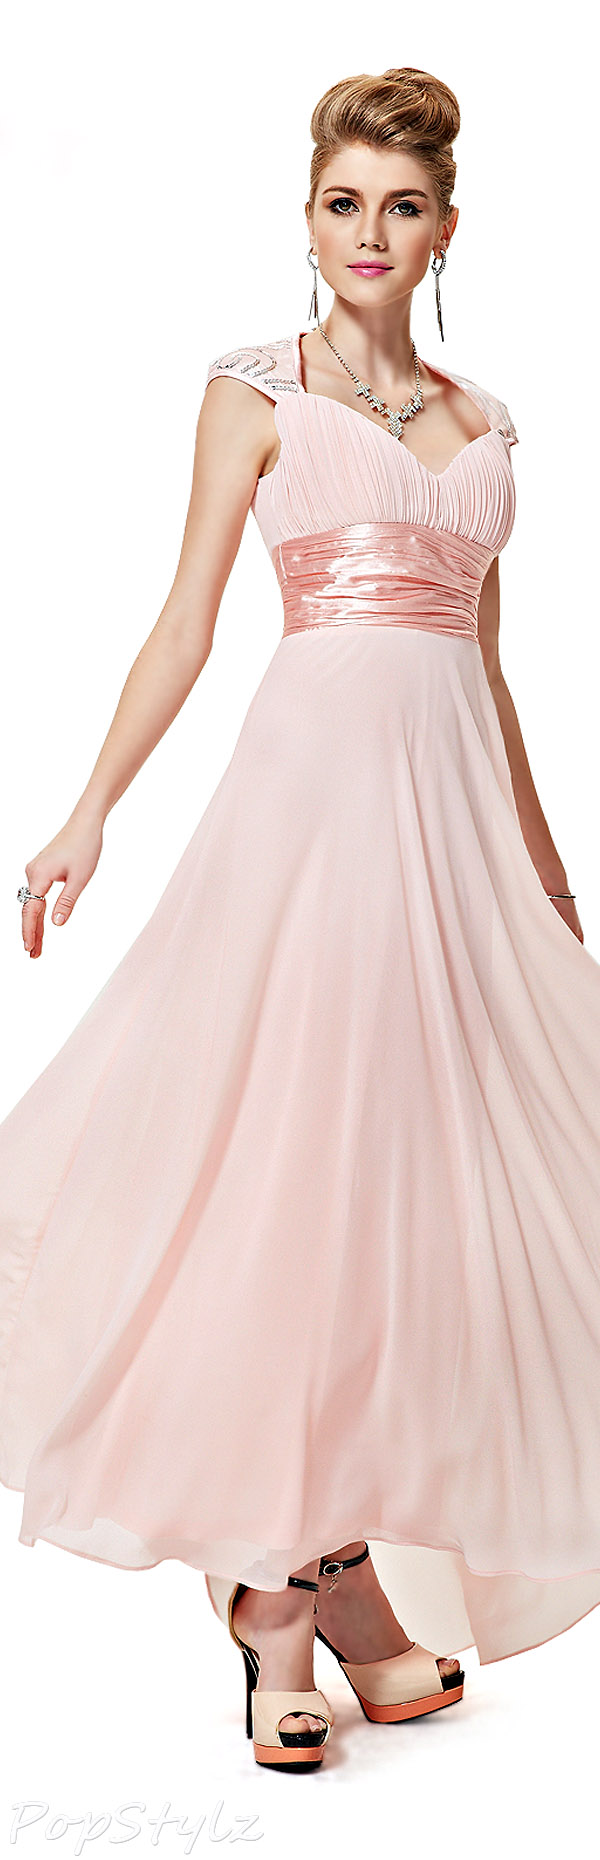 Sweet Pastel Evening Gown would make a lovely wedding dress ...